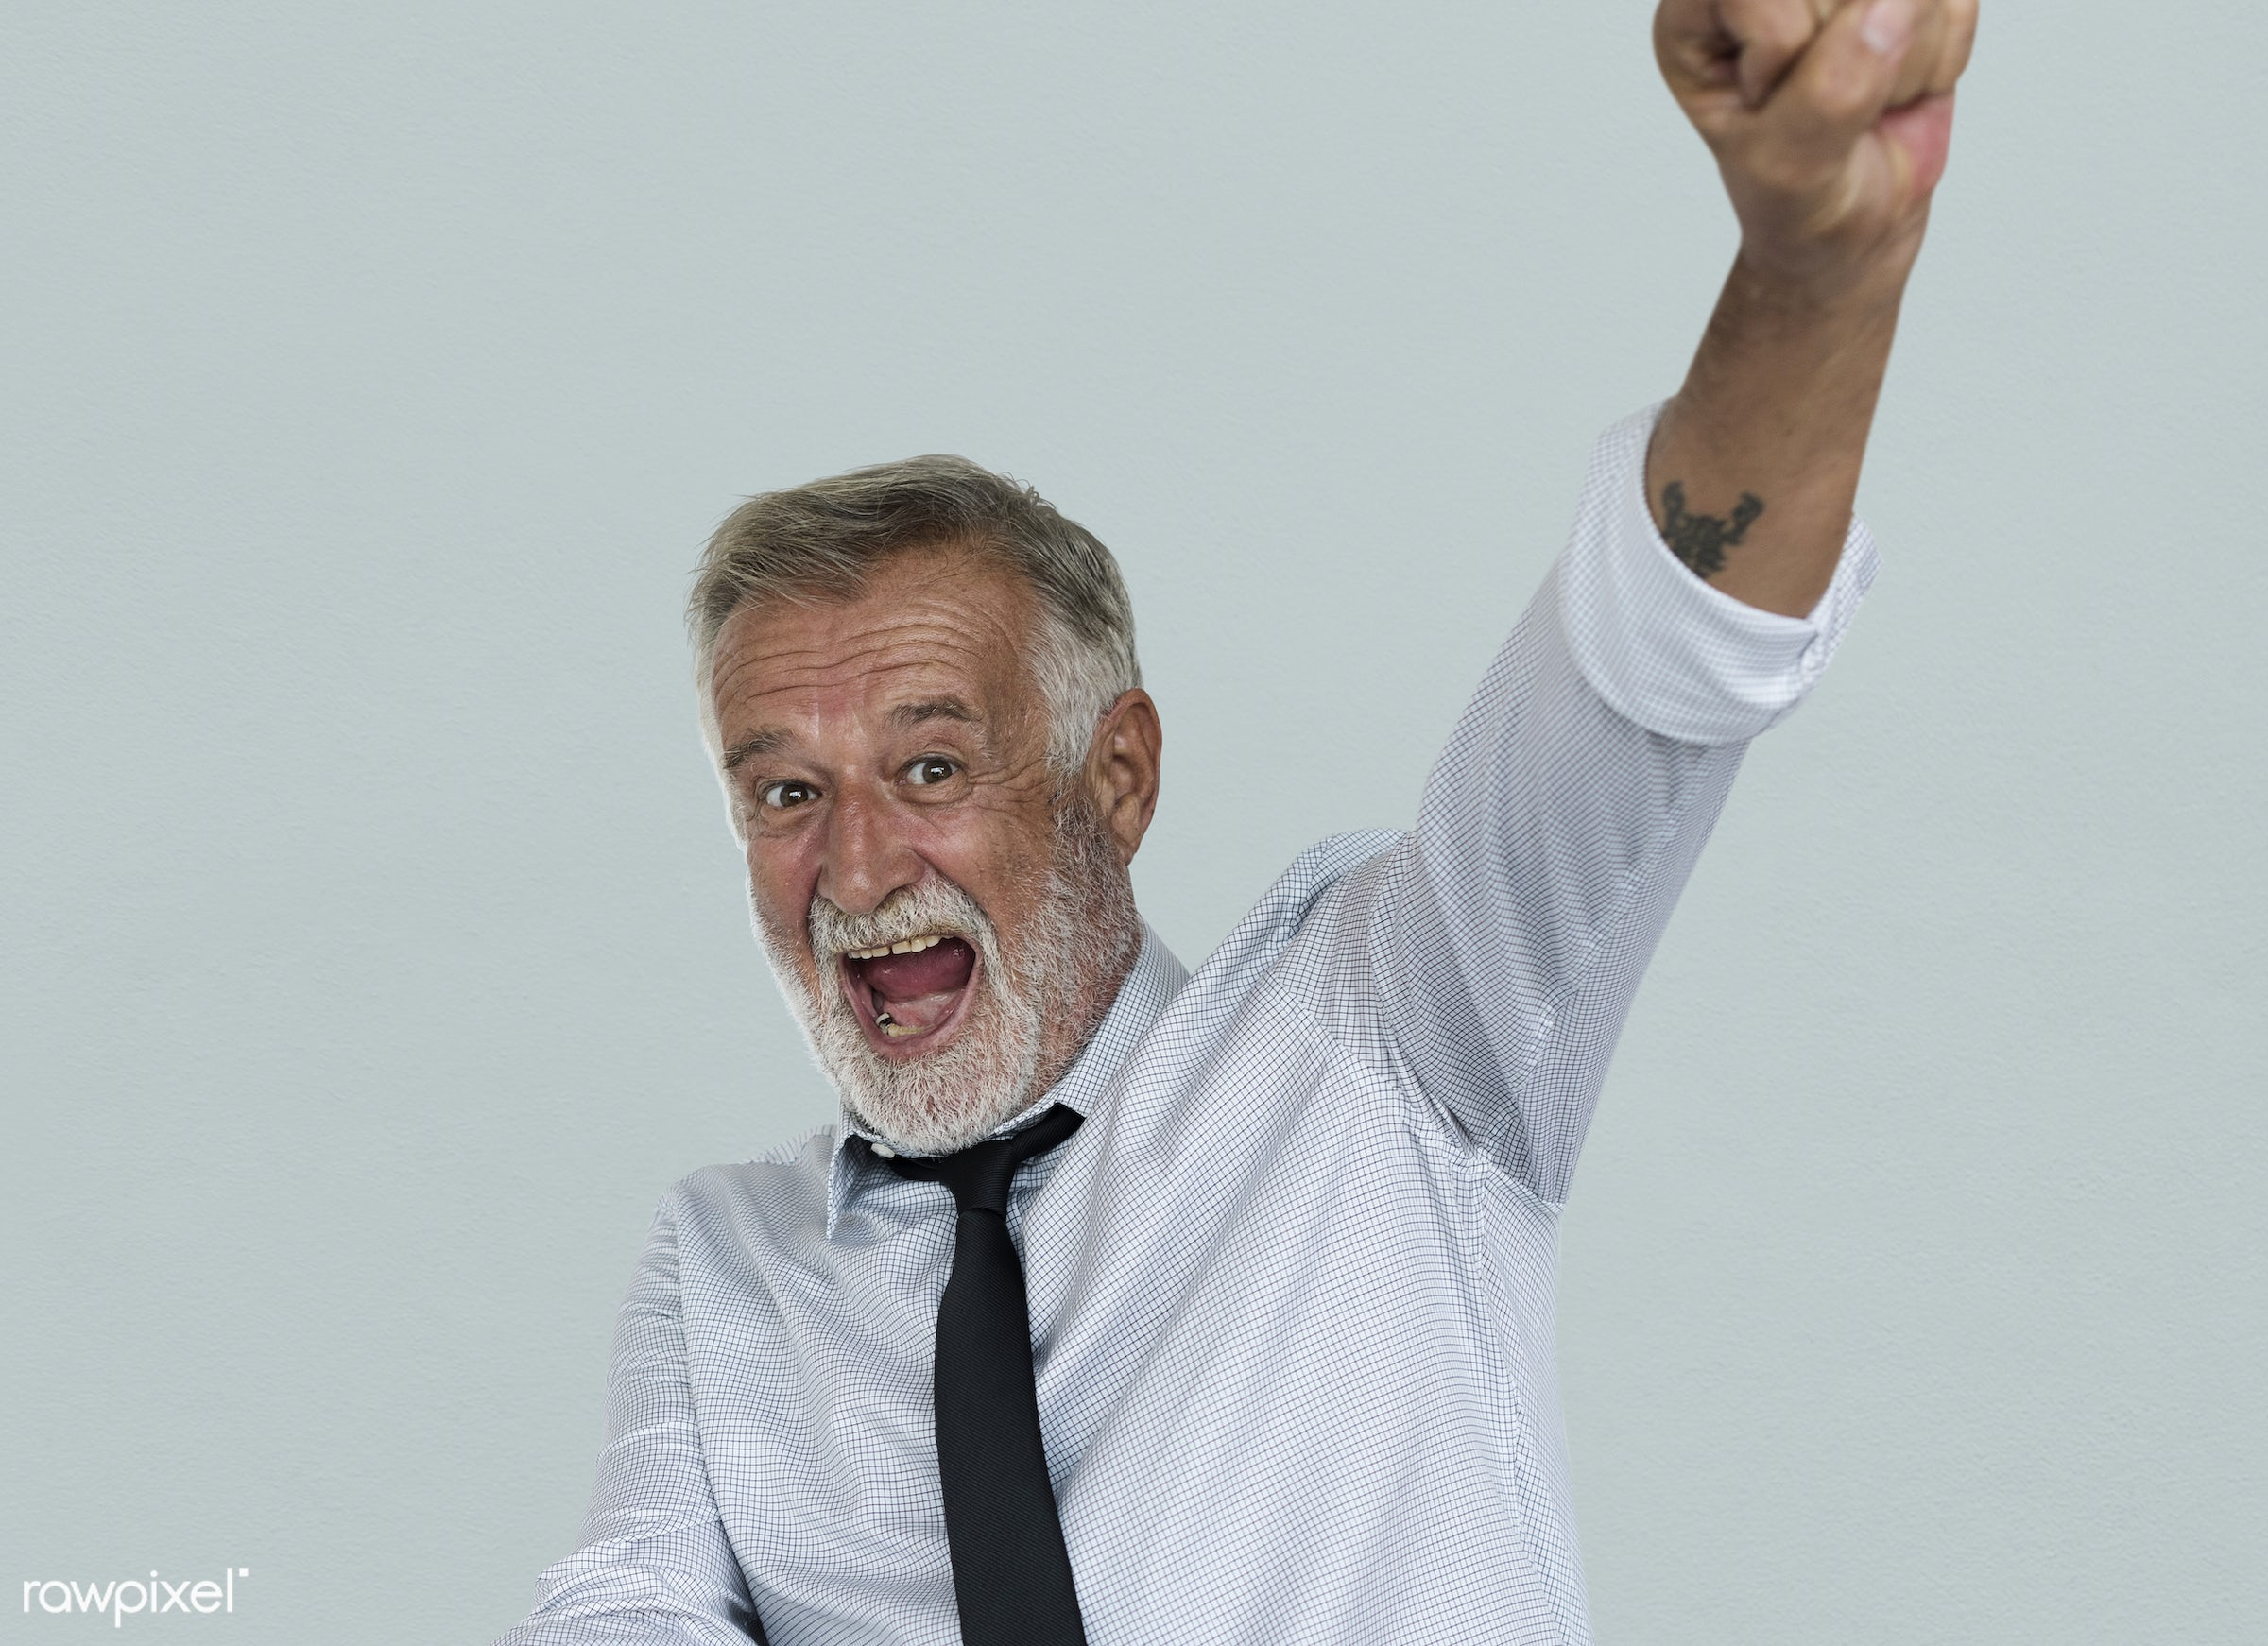 expression, studio, old, person, business wear, joy, people, caucasian, joyous, happy, smile, cheerful, smiling, formal...